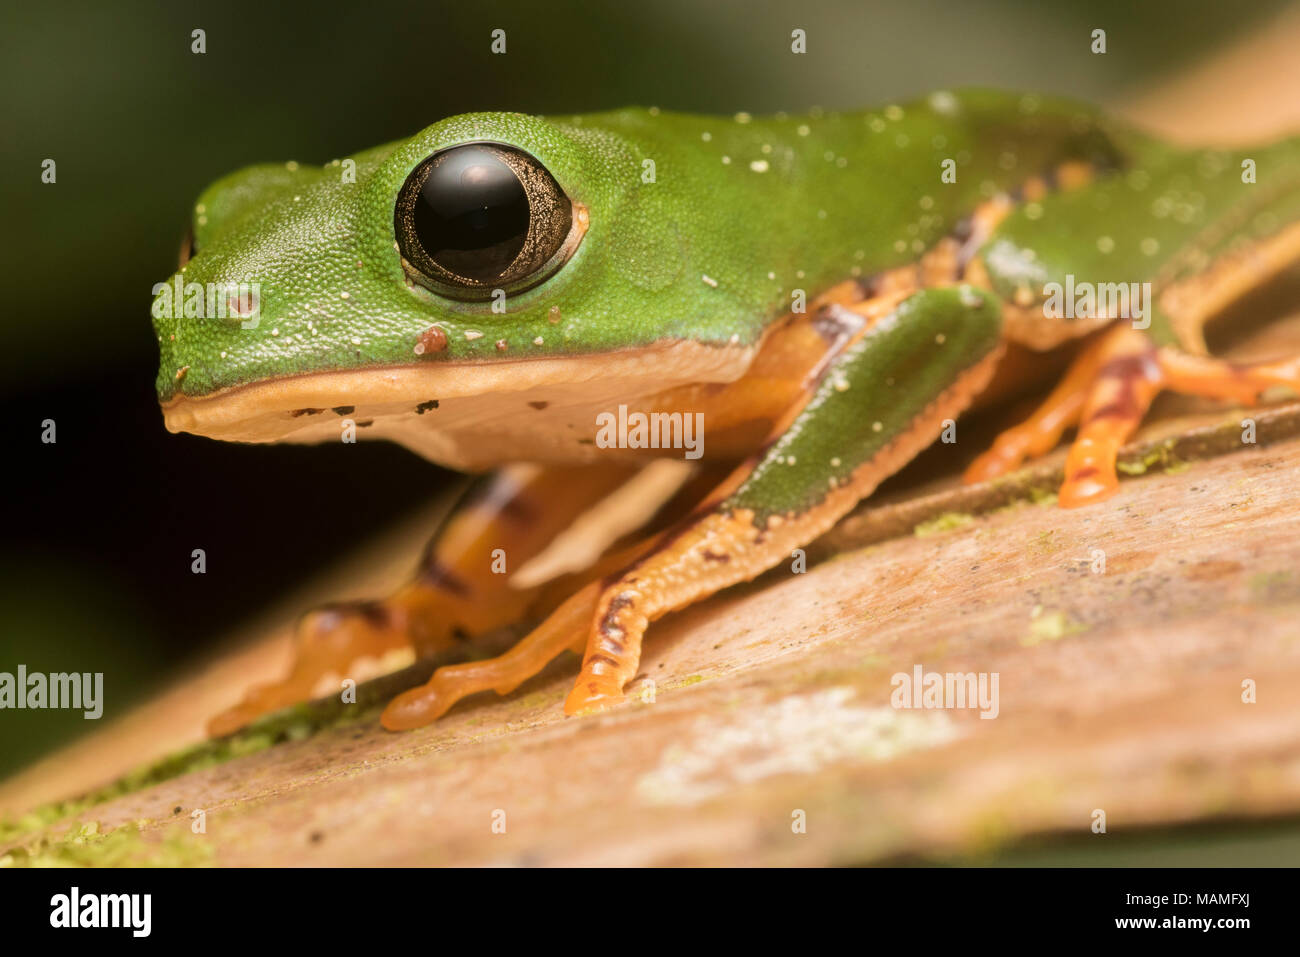 A tiger leg tree frog from near Tarapoto, Peru.  This species lives in the trees and can be found in Amazonian South America. - Stock Image